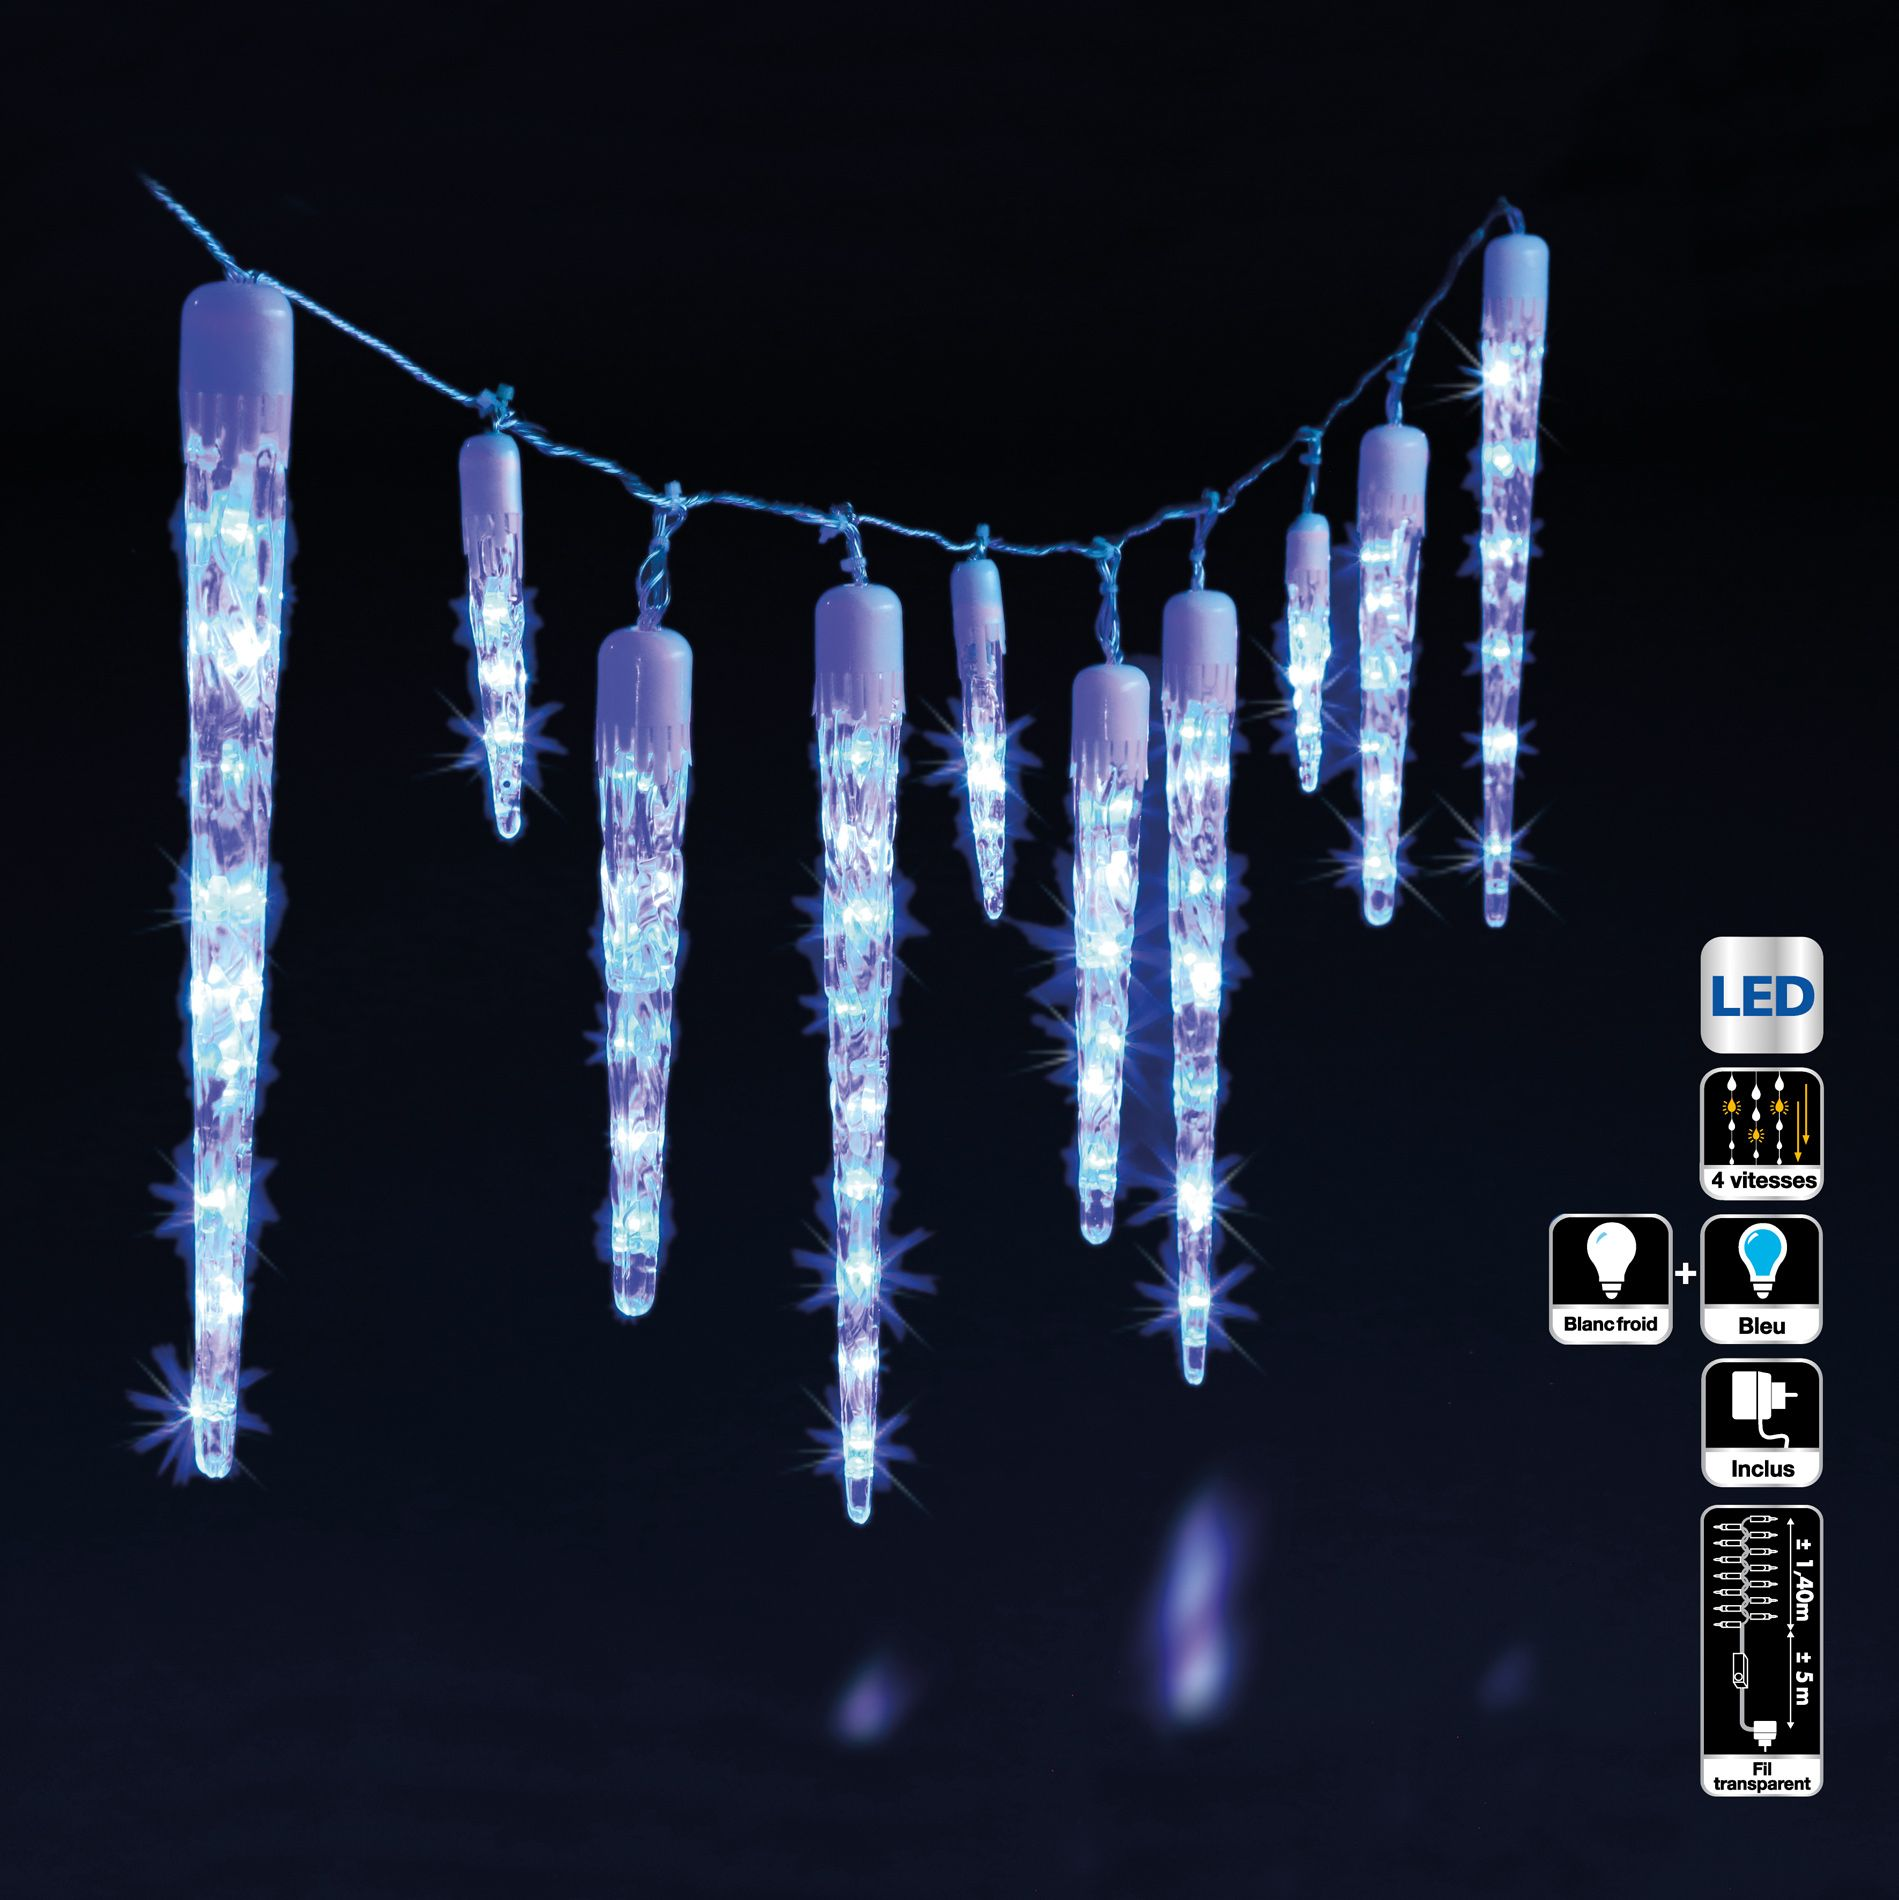 stalactite lumineuse 1 40 m gla ons bleu 63 led guirlande lumineuse eminza. Black Bedroom Furniture Sets. Home Design Ideas